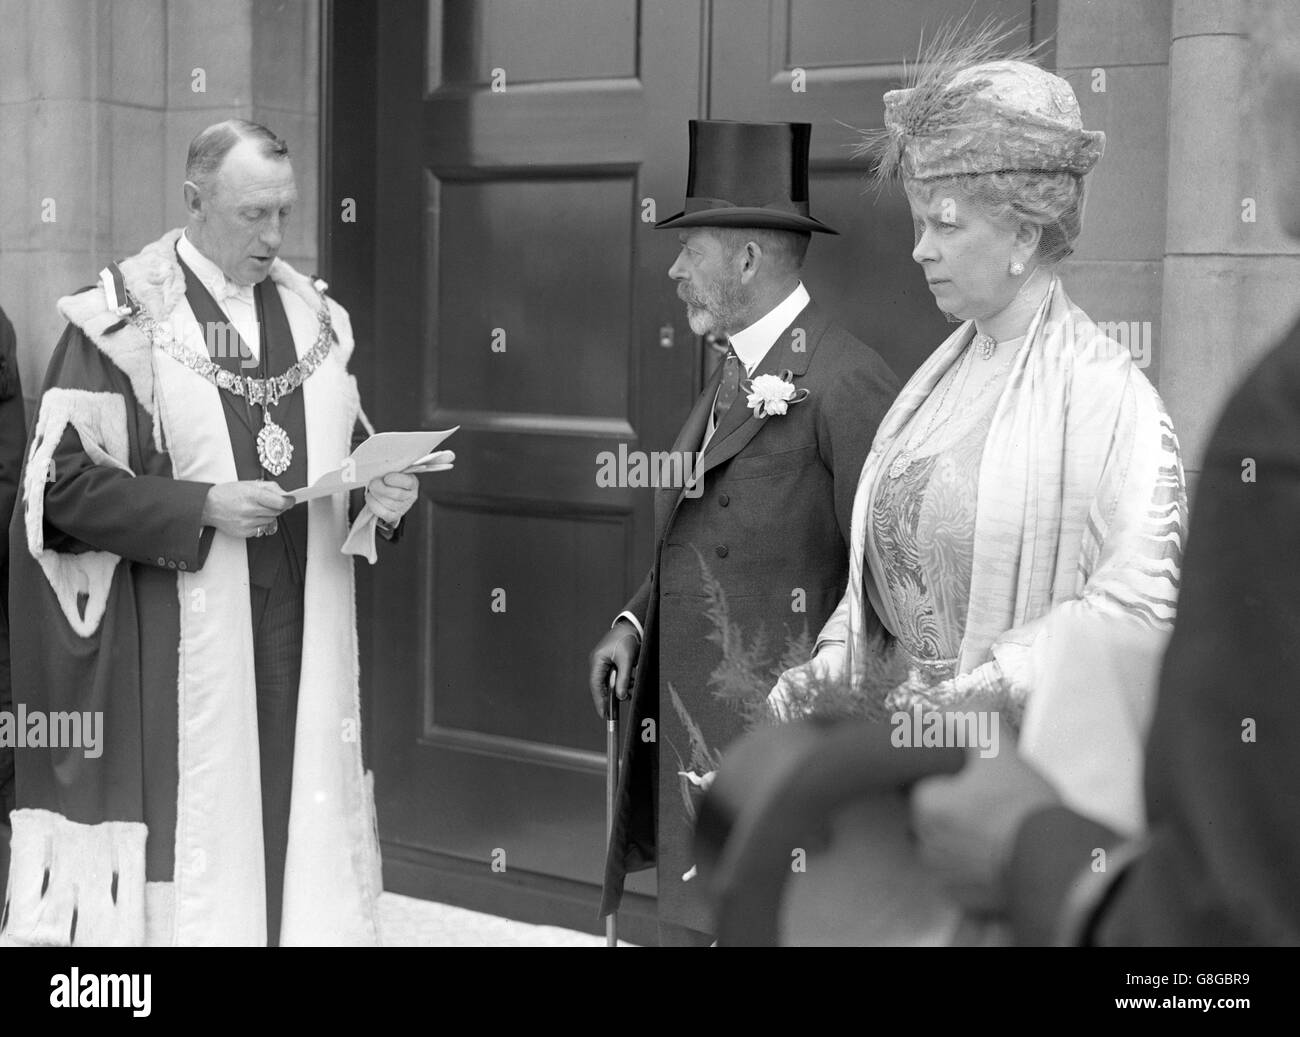 King George V and Queen Mary - Portobello, London - Stock Image